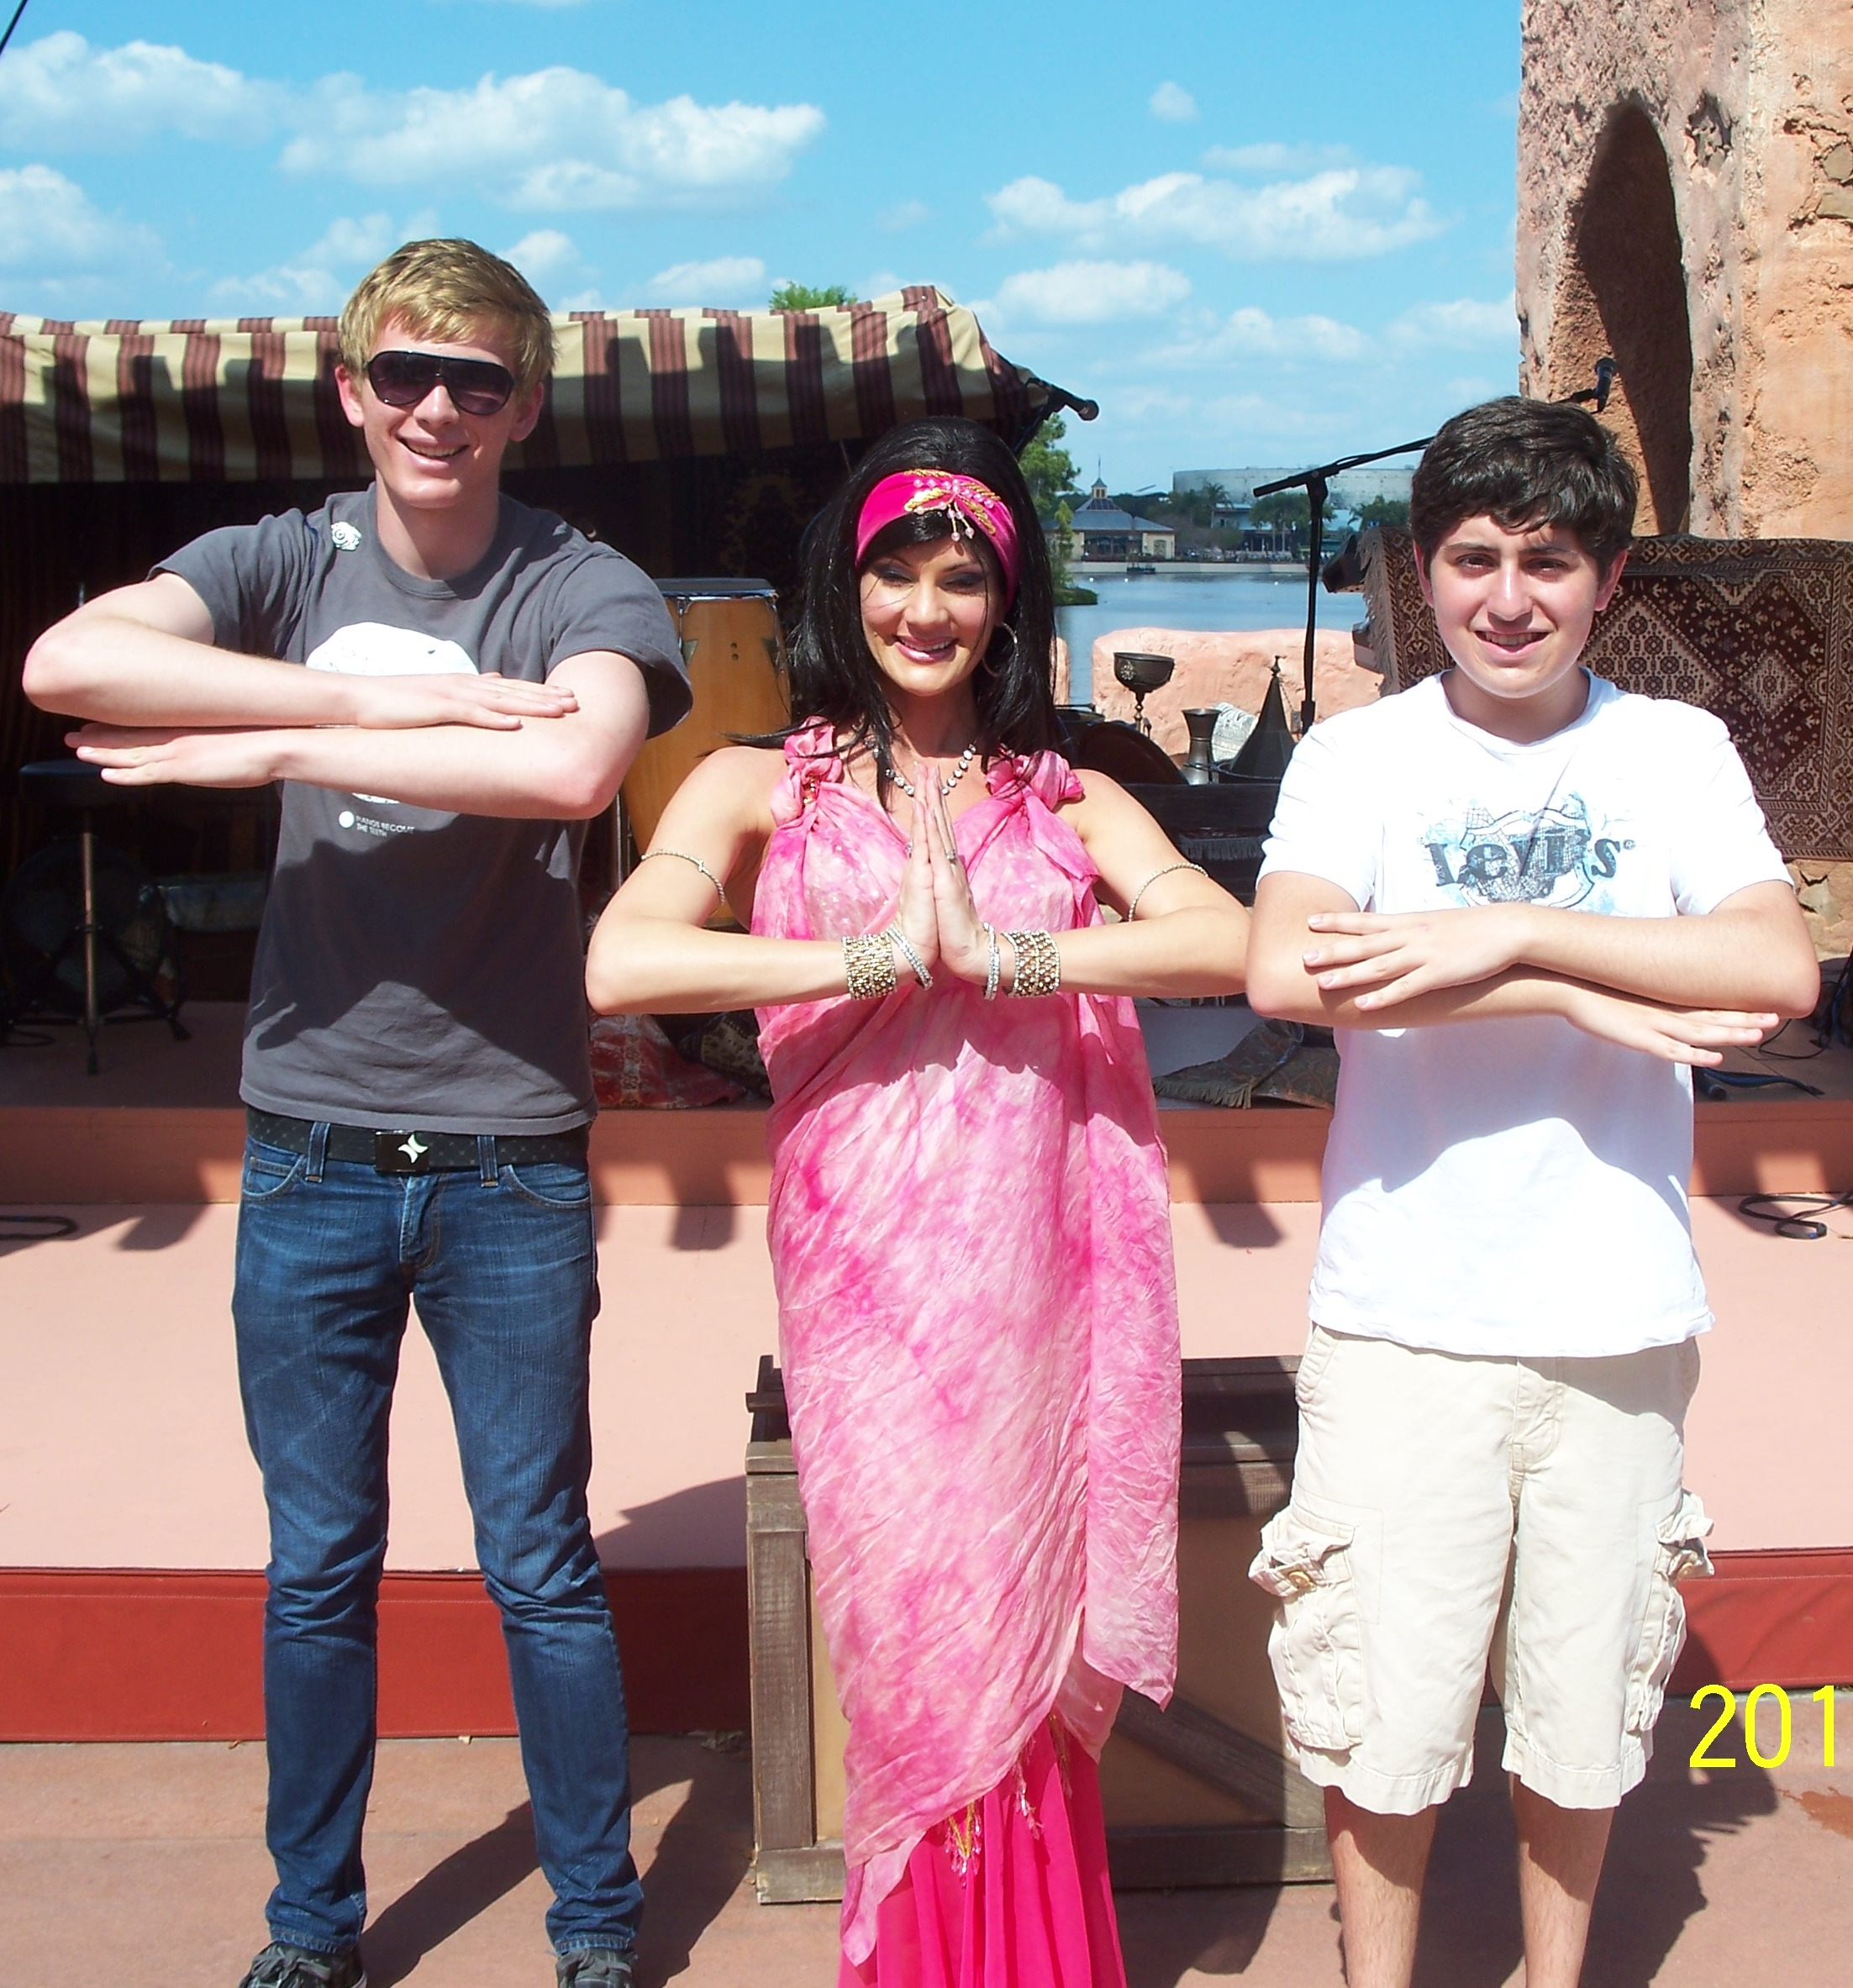 Belly Dancing at Epcot